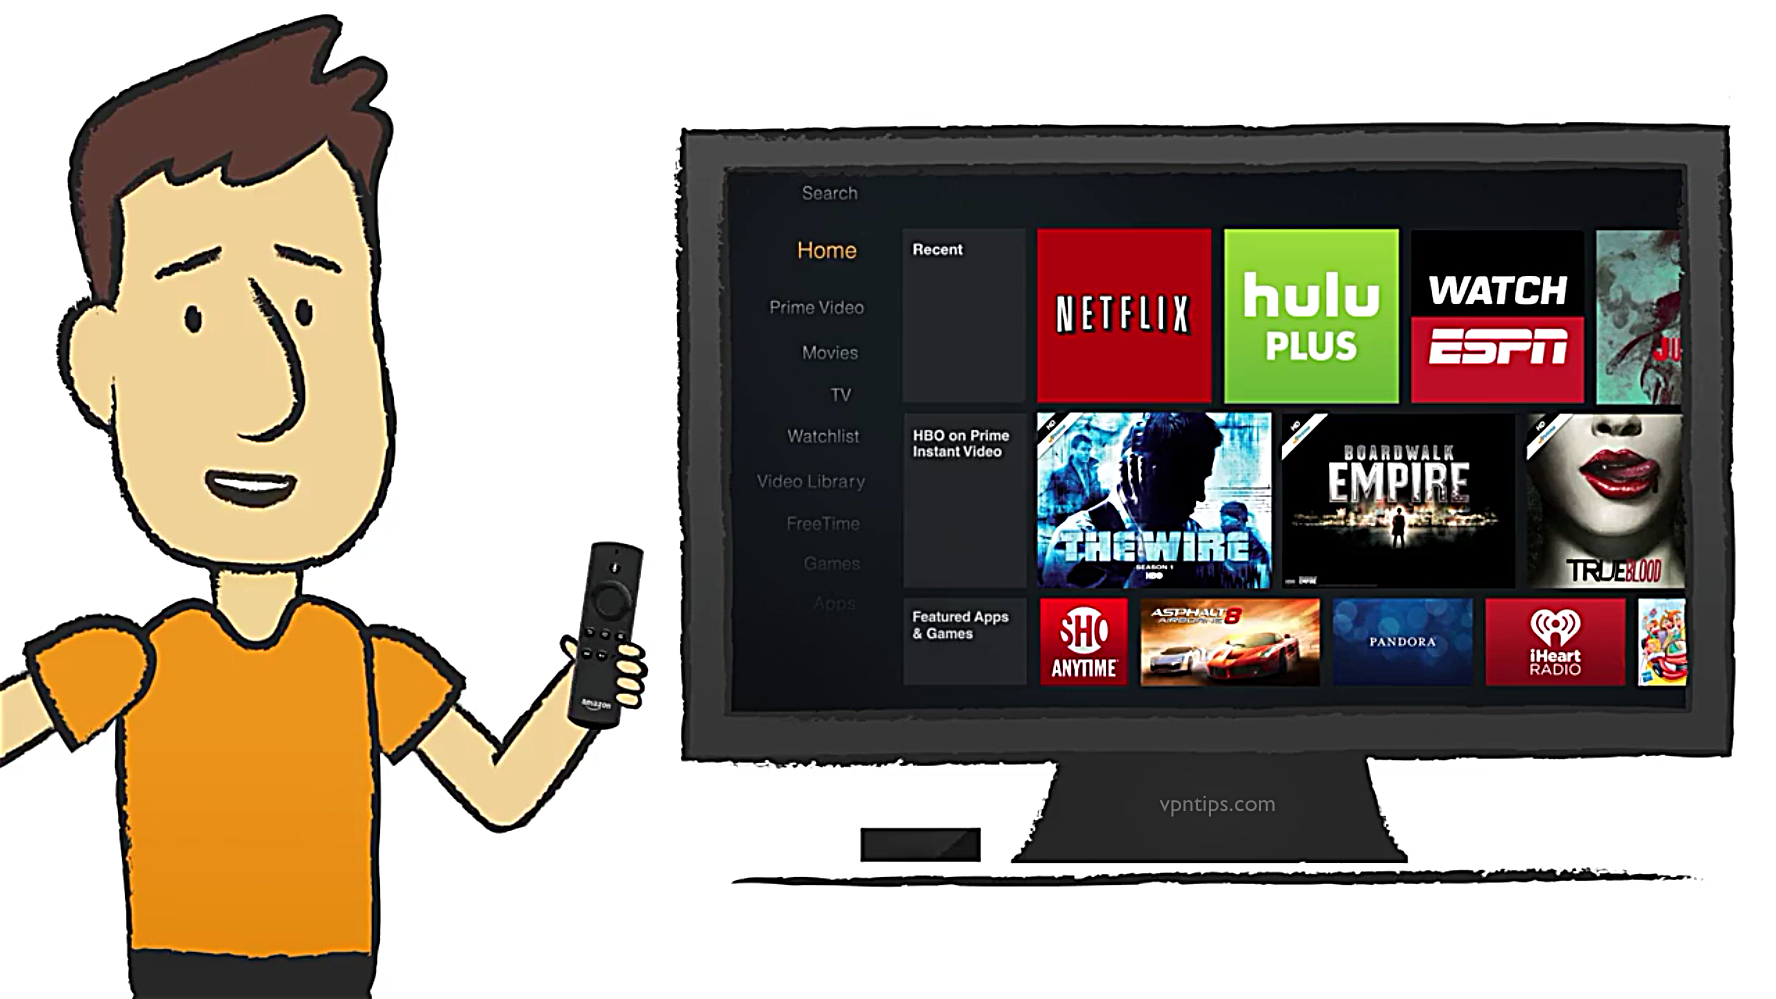 How to Install VPN on Fire TV